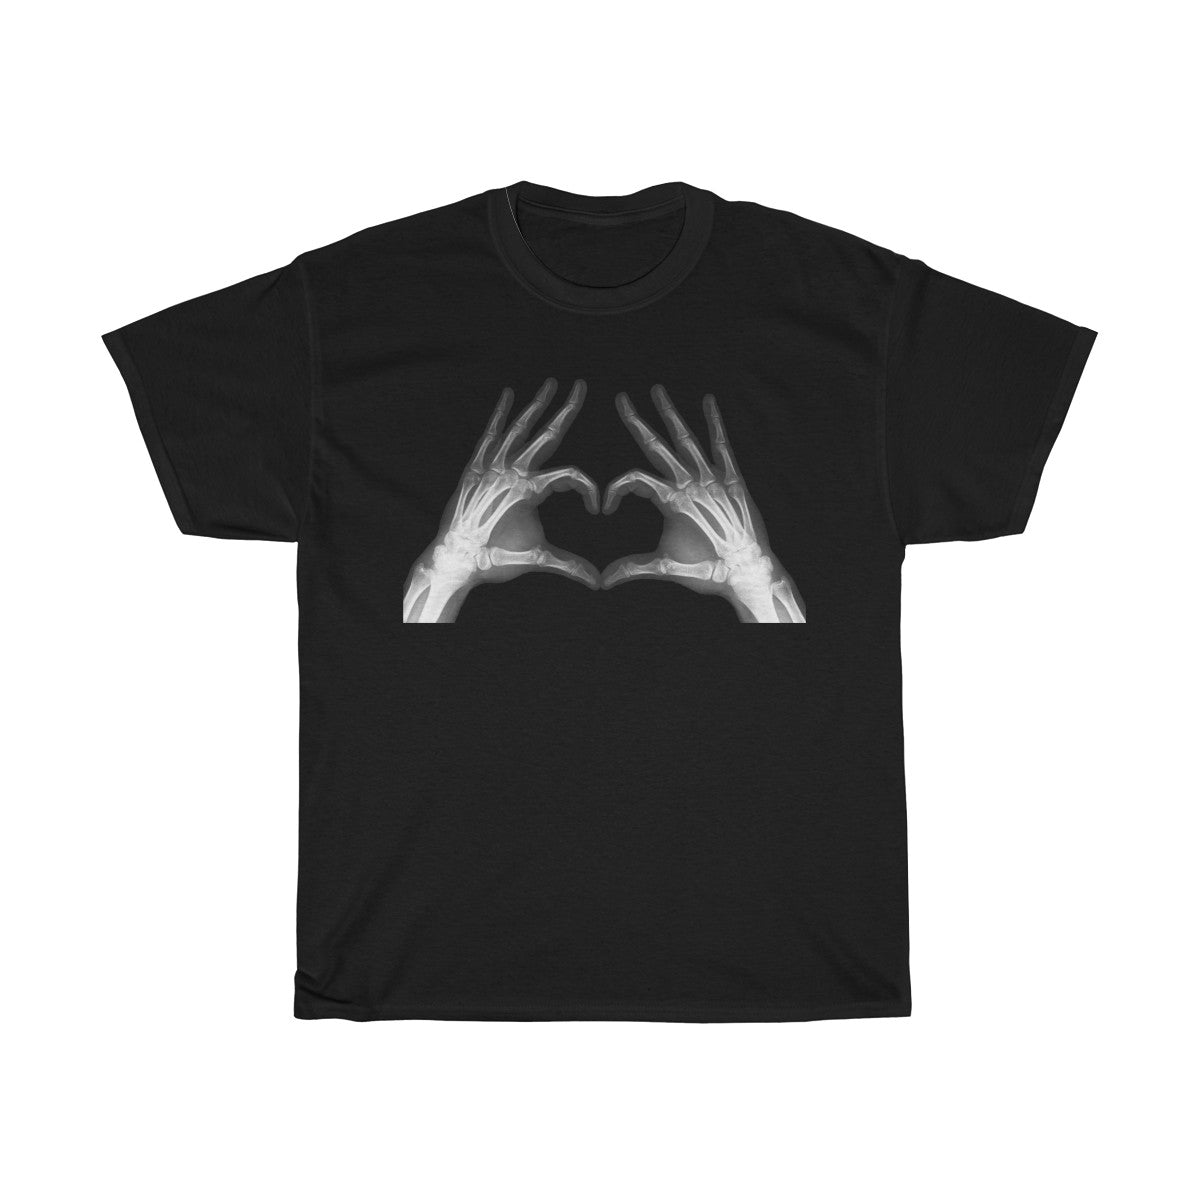 Heart Shaped Hands of Love - Xray Hands Men's T-Shirt - FREE shipping in US